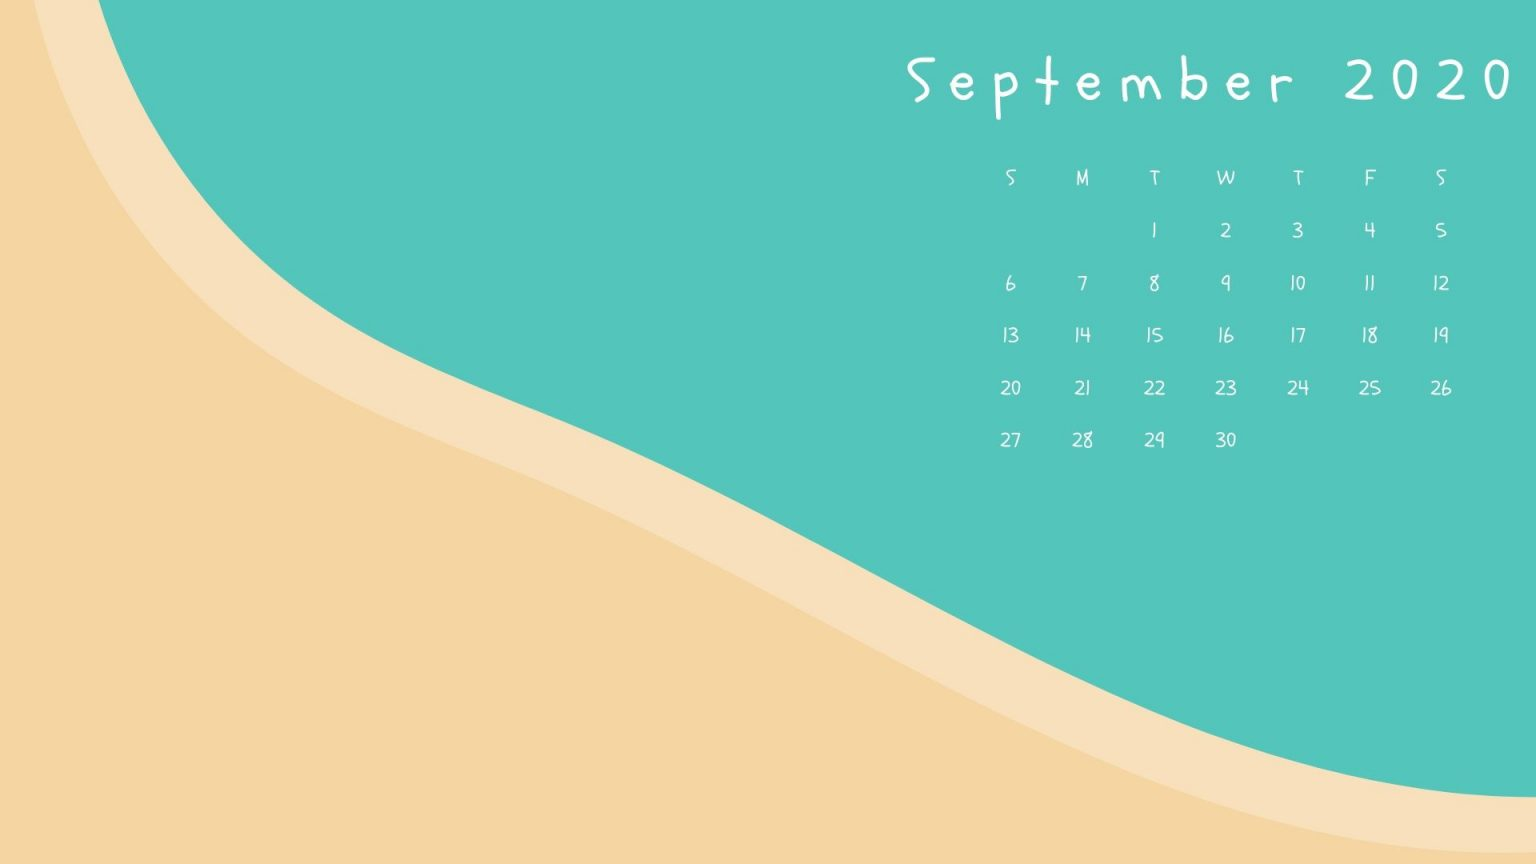 September 2020 Beach Calendar Wallpaper